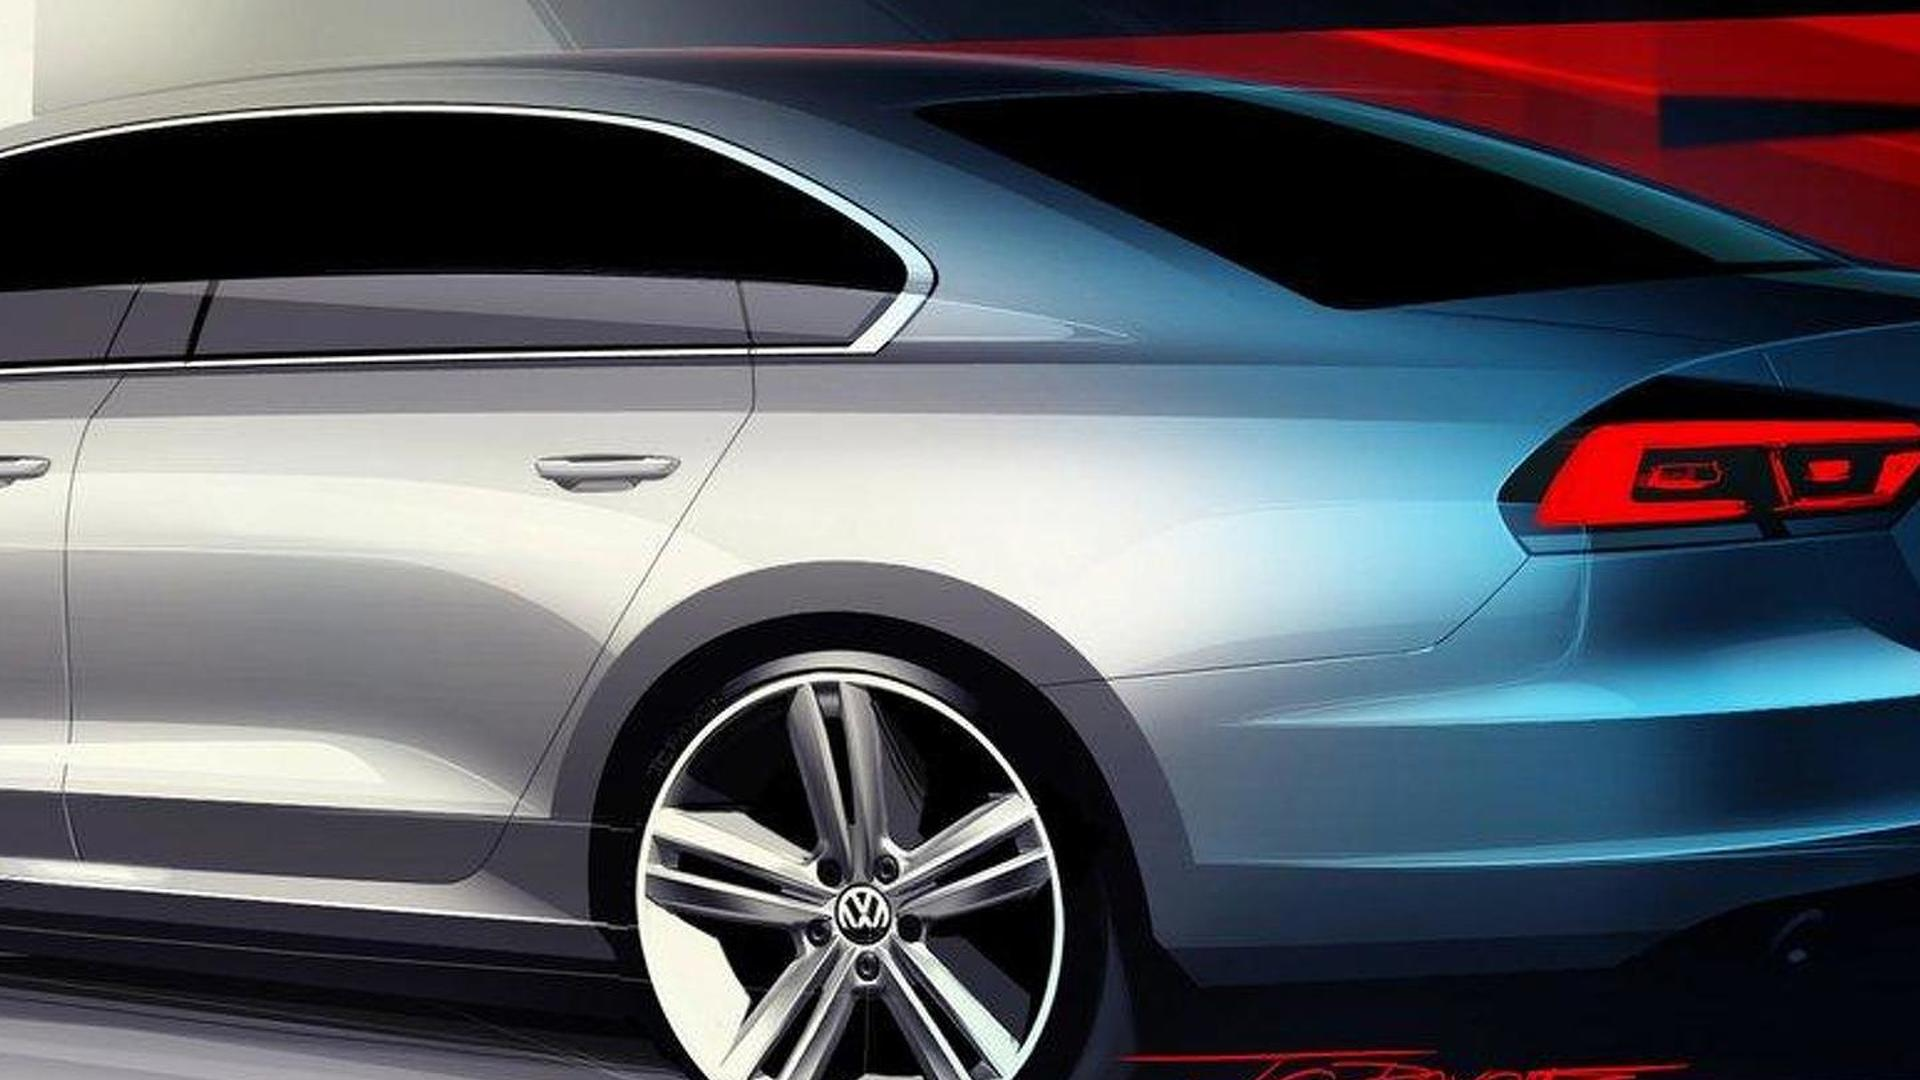 Volkswagen will unveil NMS at NAIAS - report